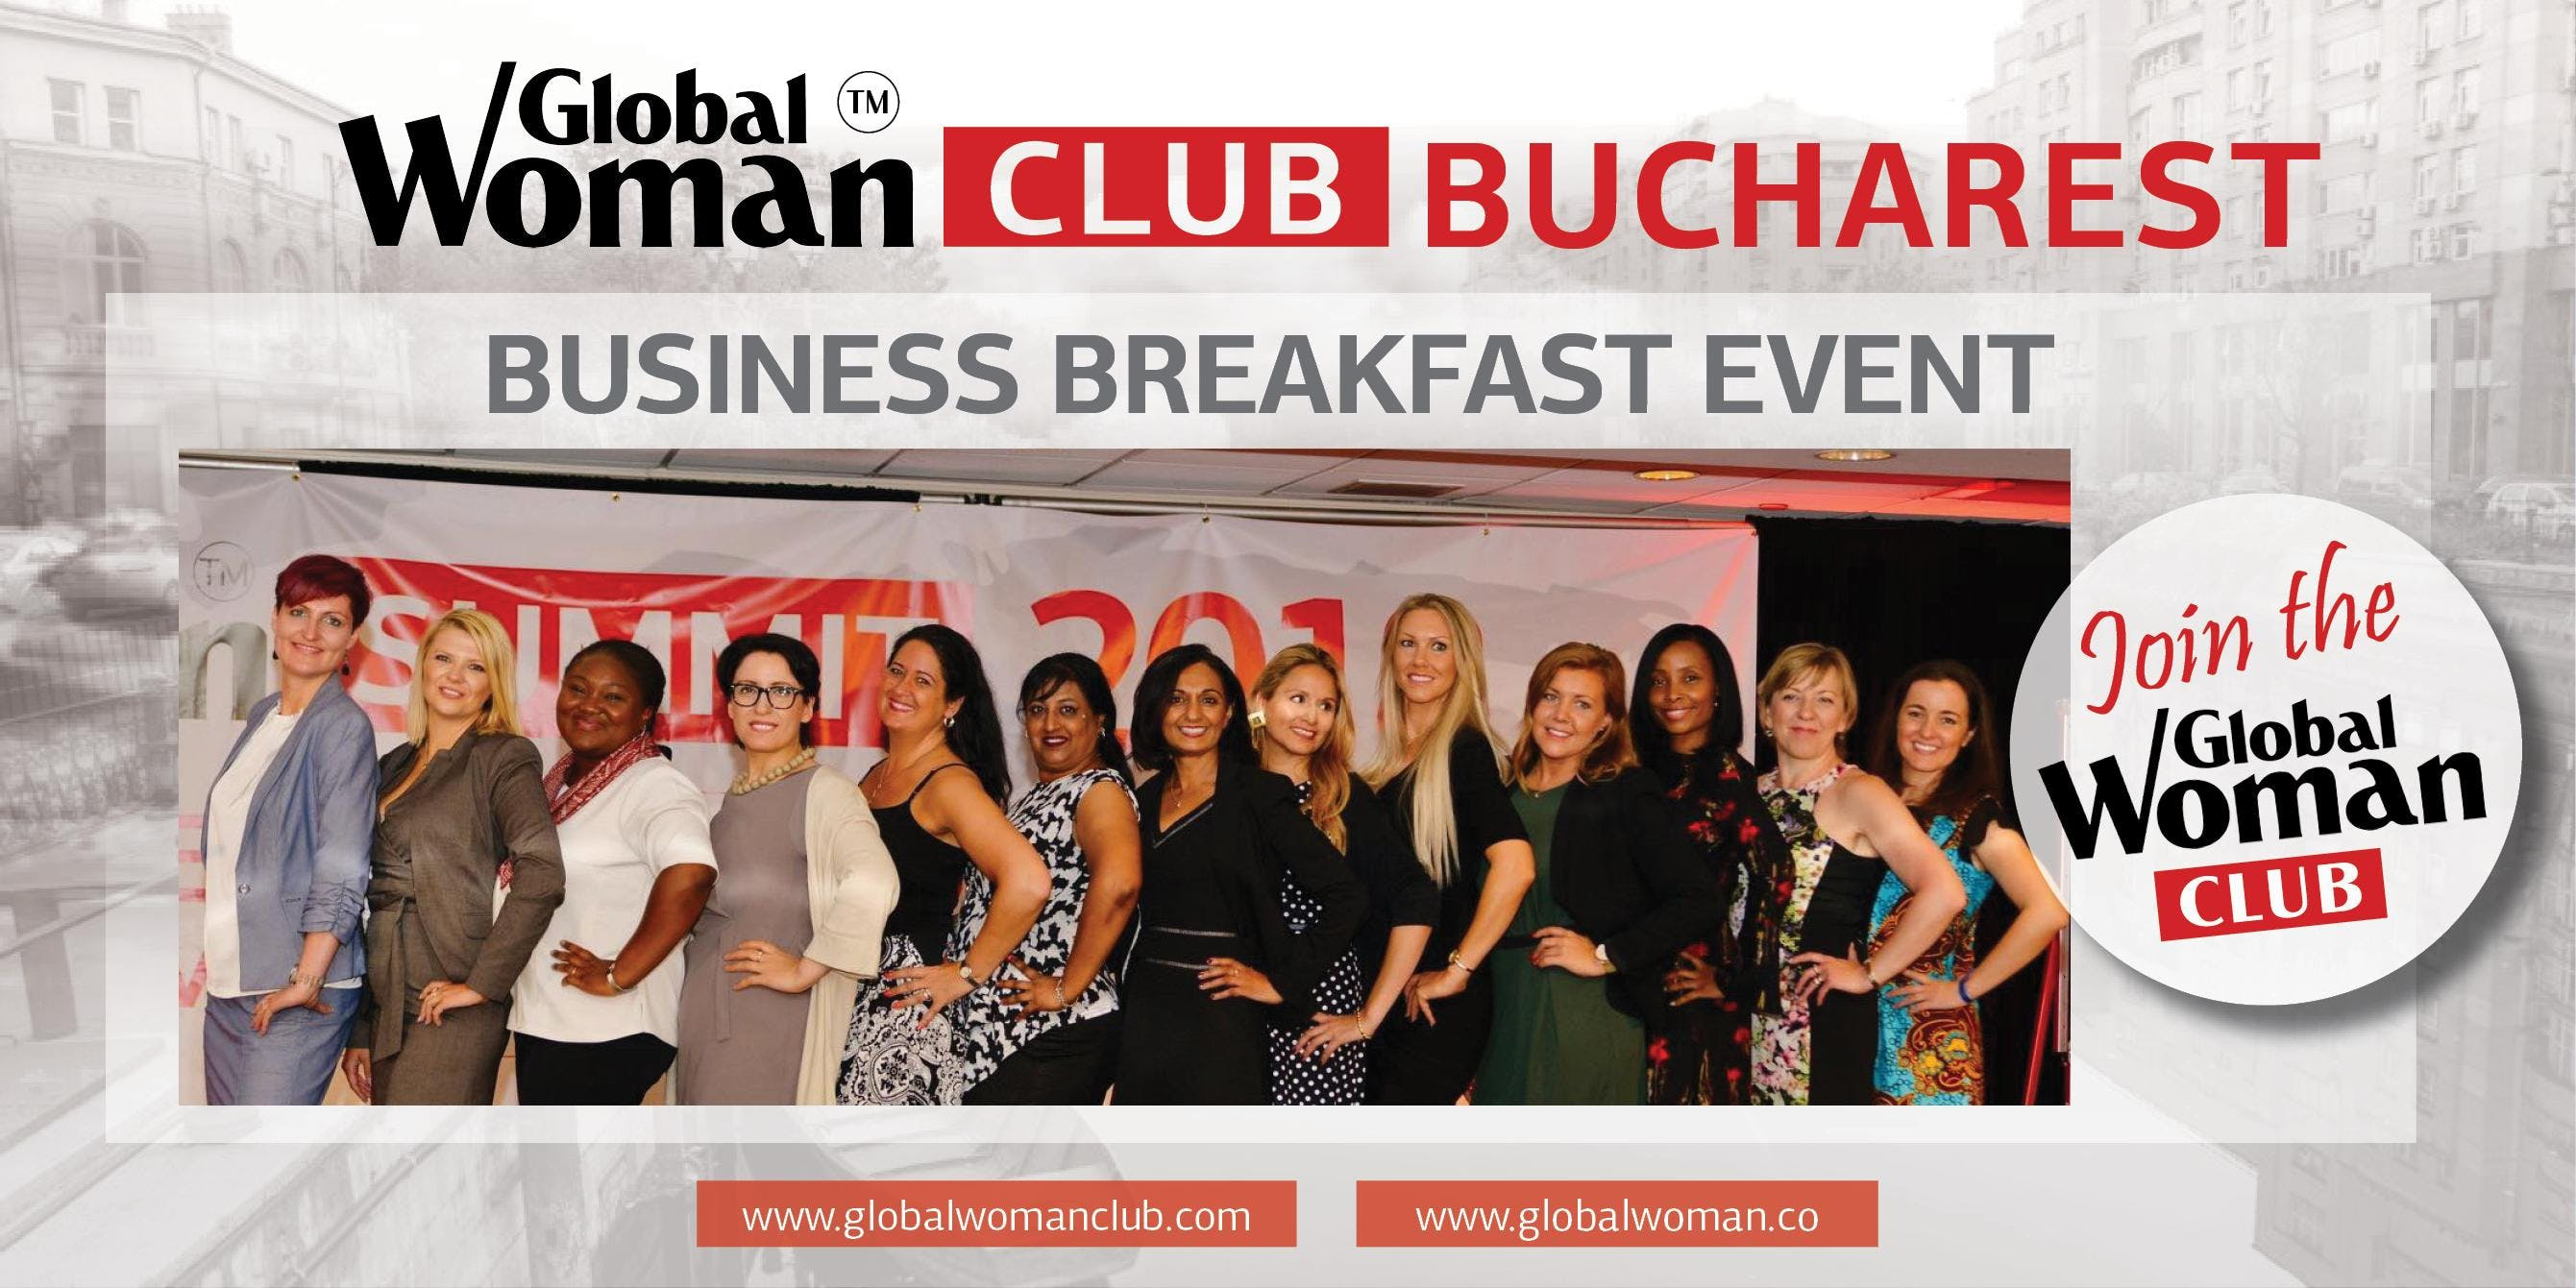 GLOBAL WOMAN CLUB BUCHAREST: BUSINESS NETWORKING BREAKFAST - NOVEMBER